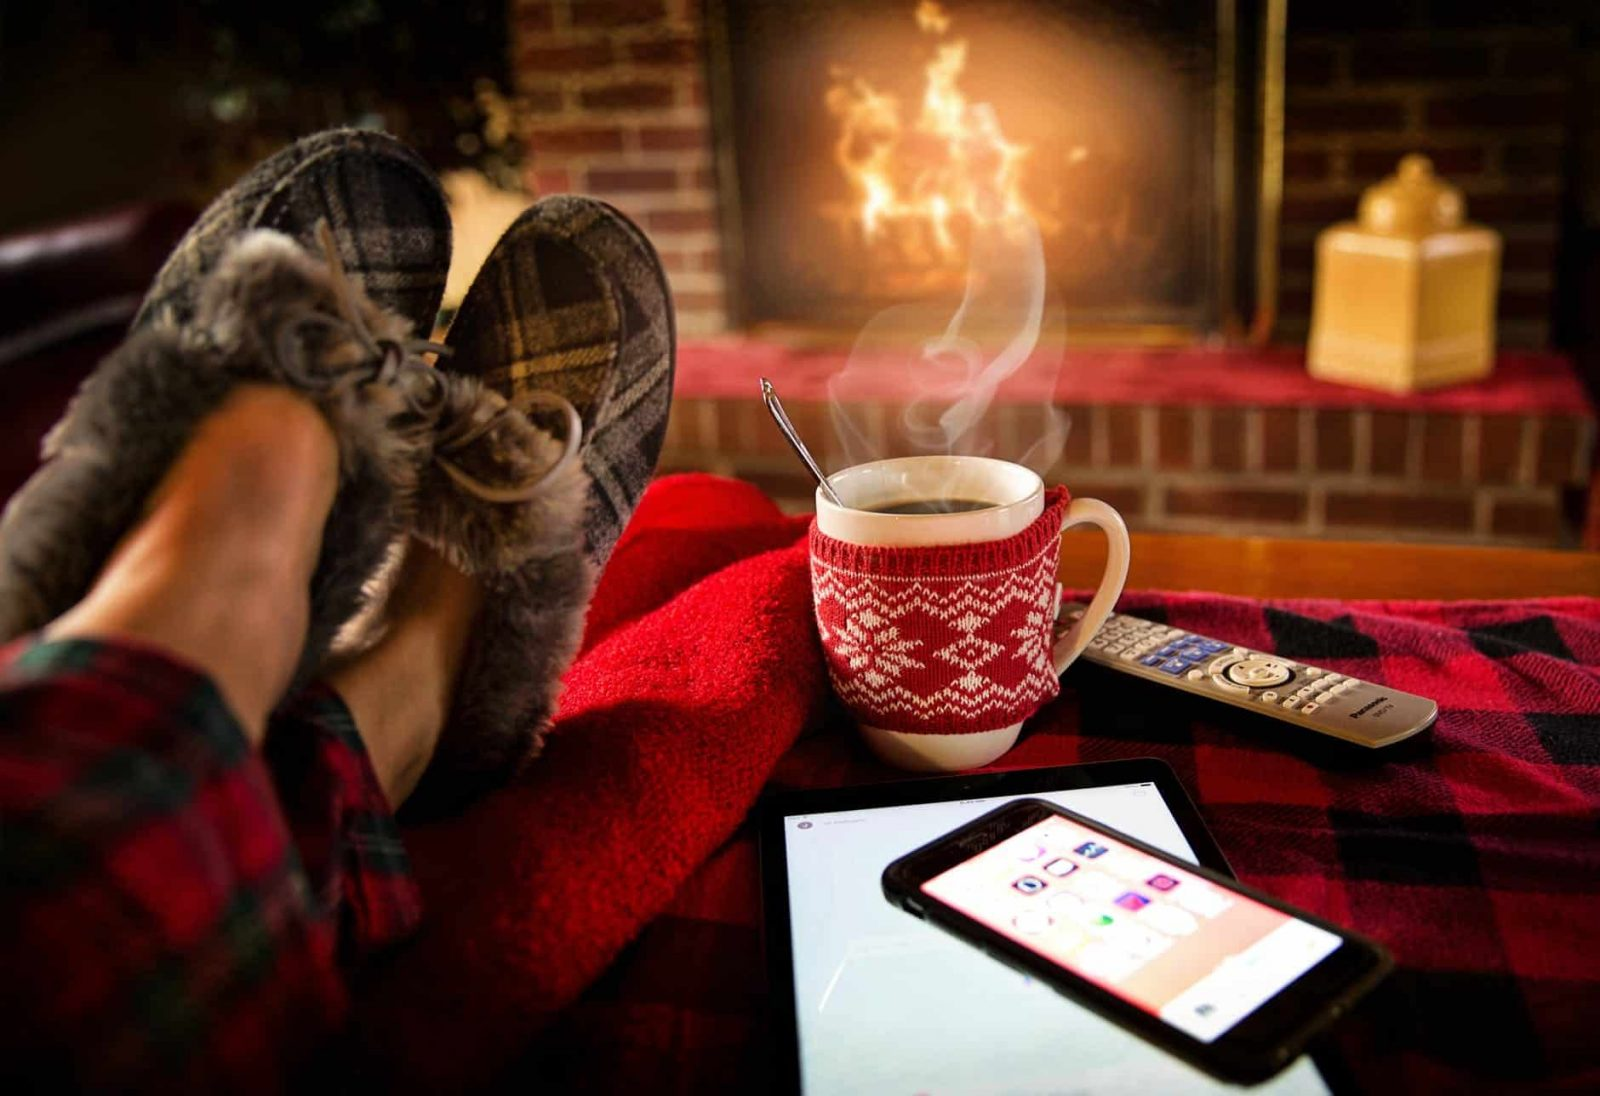 comfy woman's feet propped up before warm fireplace and hot drink